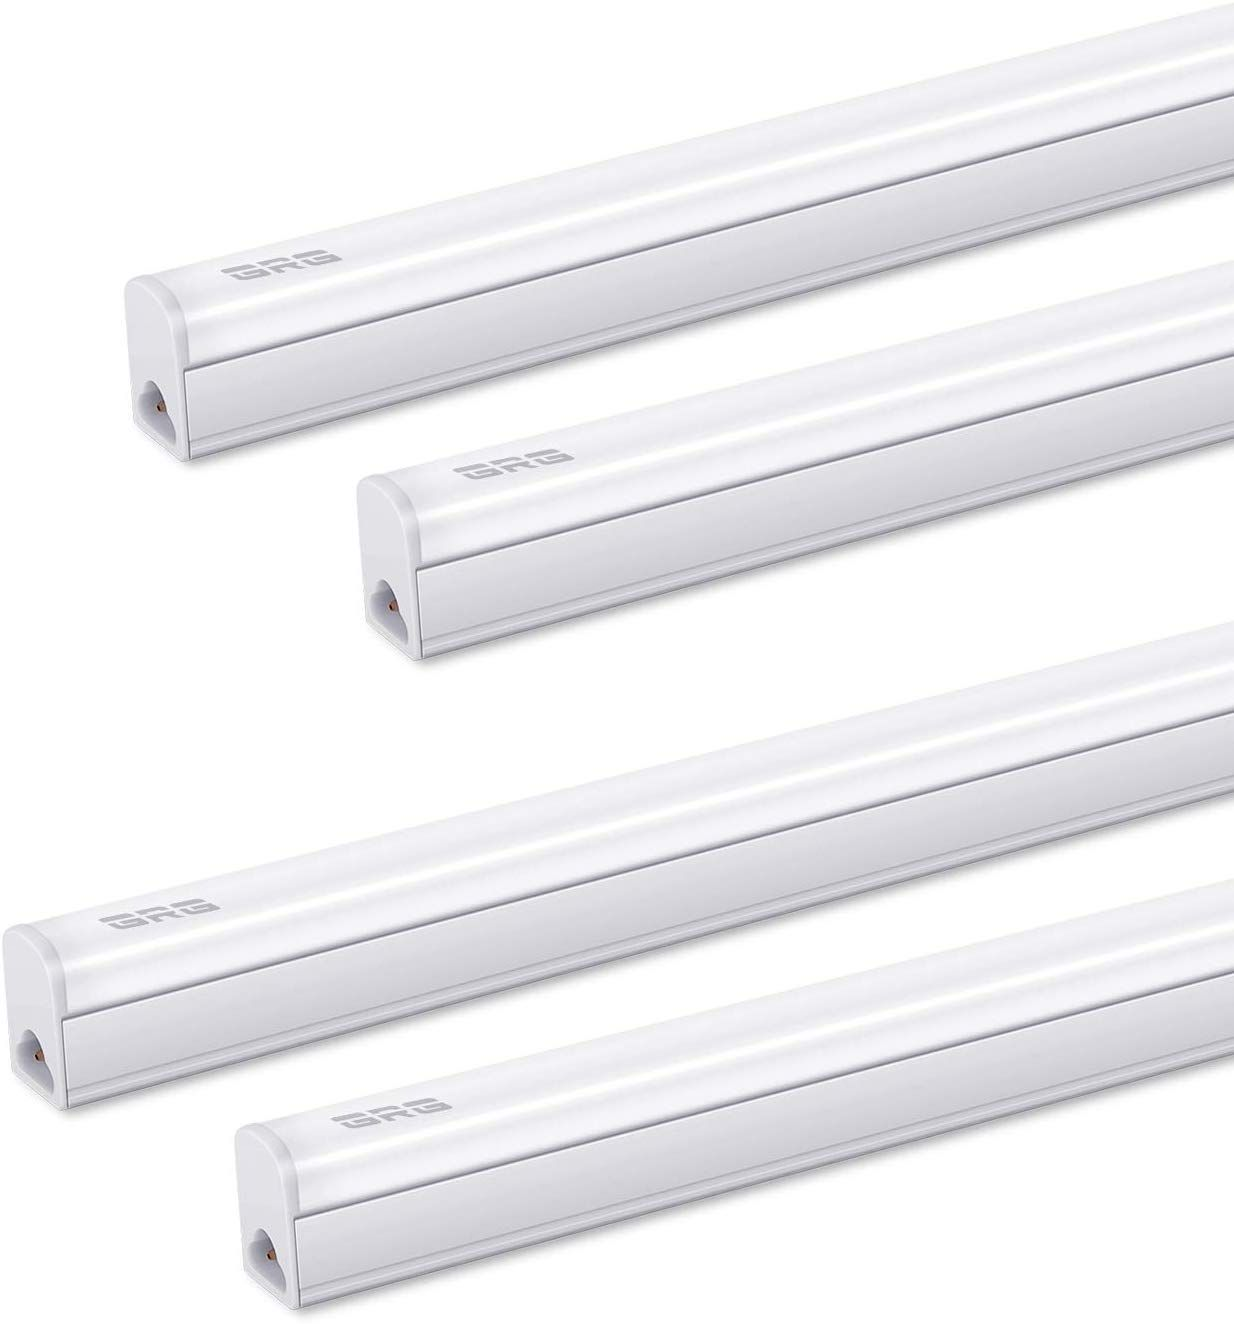 Pack Of 4 Grg Led T5 Integrated Single Fixture 3ft 15w 1650lm 6500k Linkable Utility Shop Light Garage Light Led Ceiling Under Cabinet Light T5 T8 Fluoresc Fluorescent Tube Light Garage